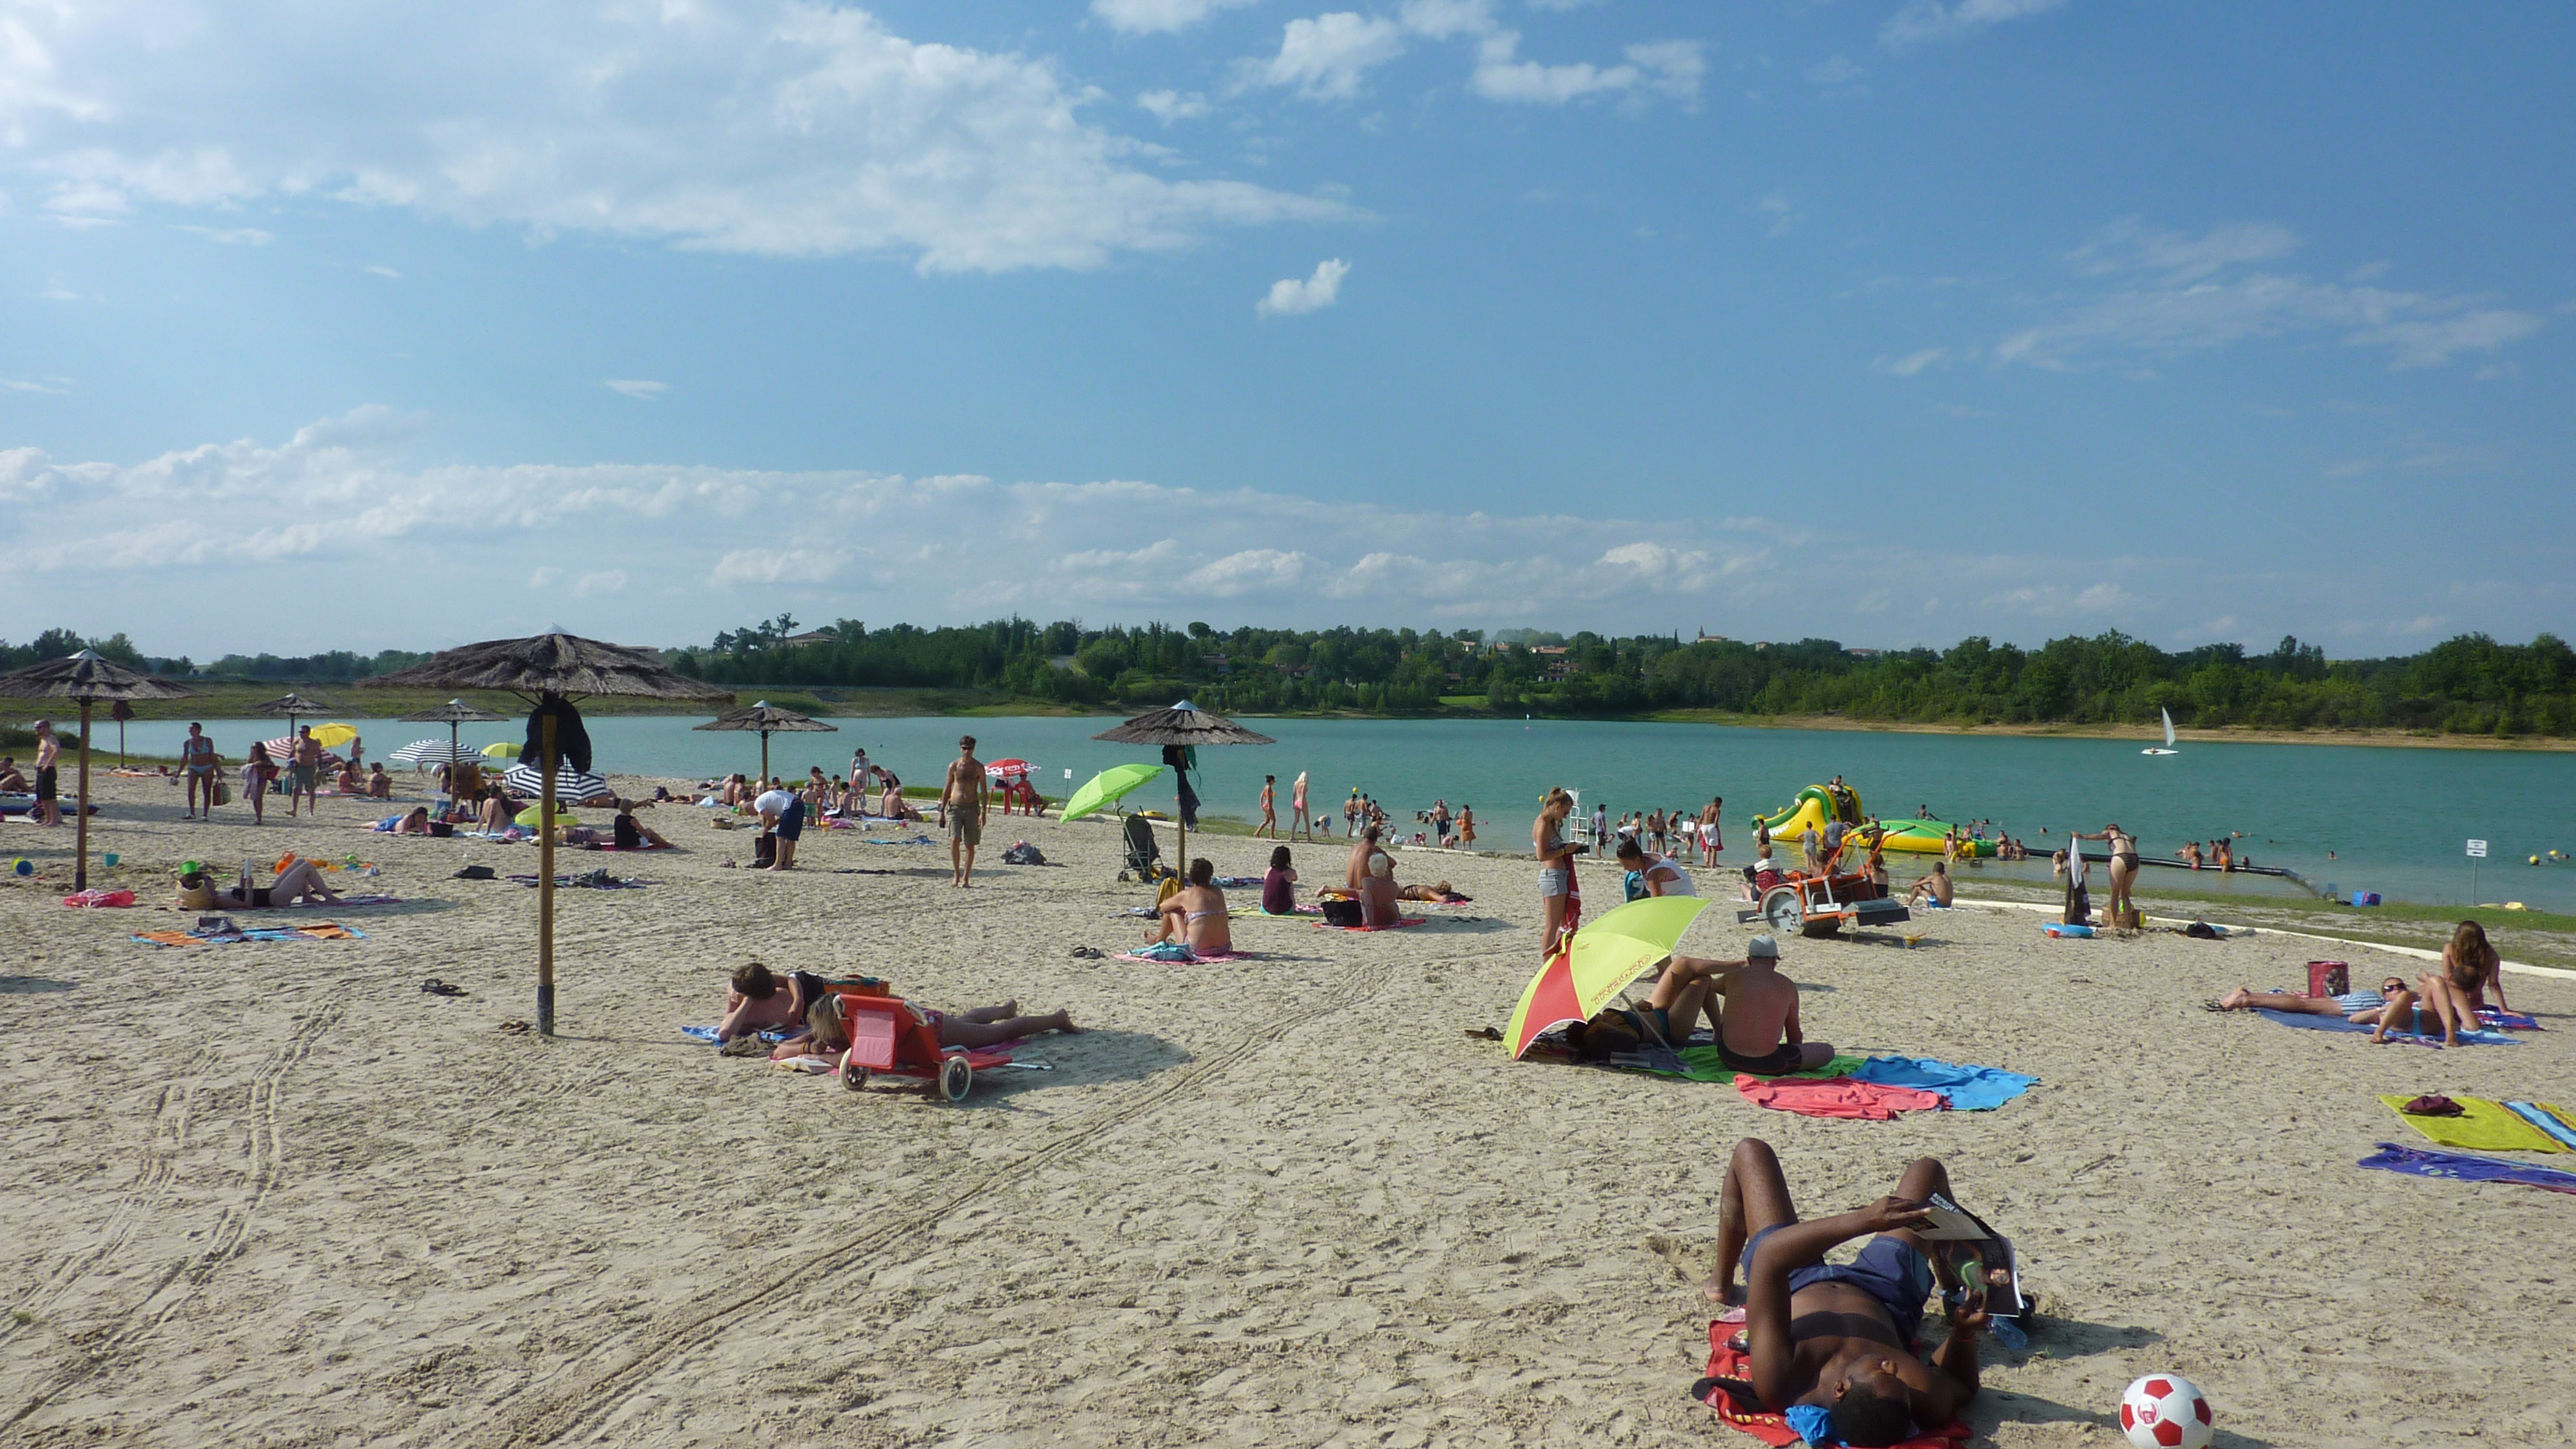 plage gers camping toulouse piscine picture plage gers